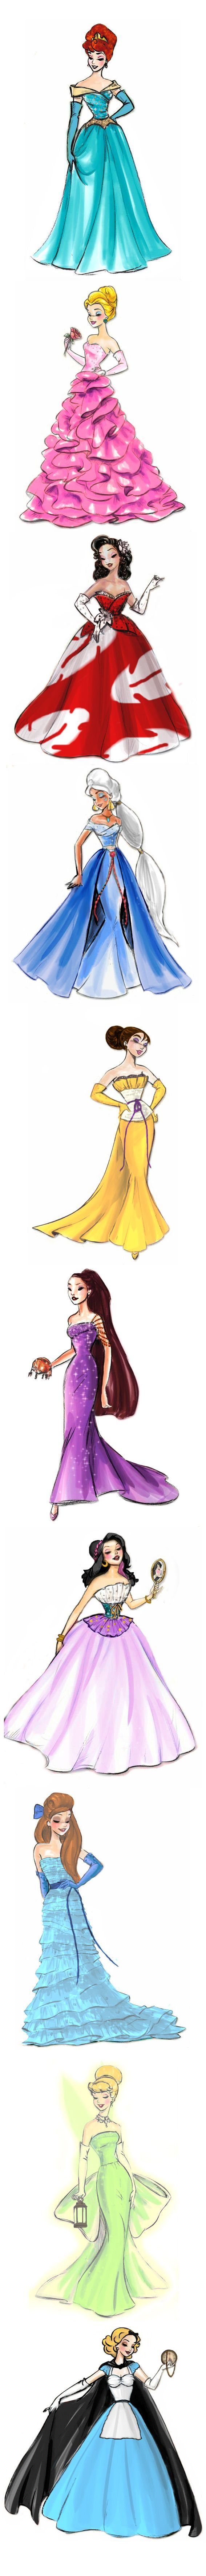 Which Disney Princess describes your sewing personality?